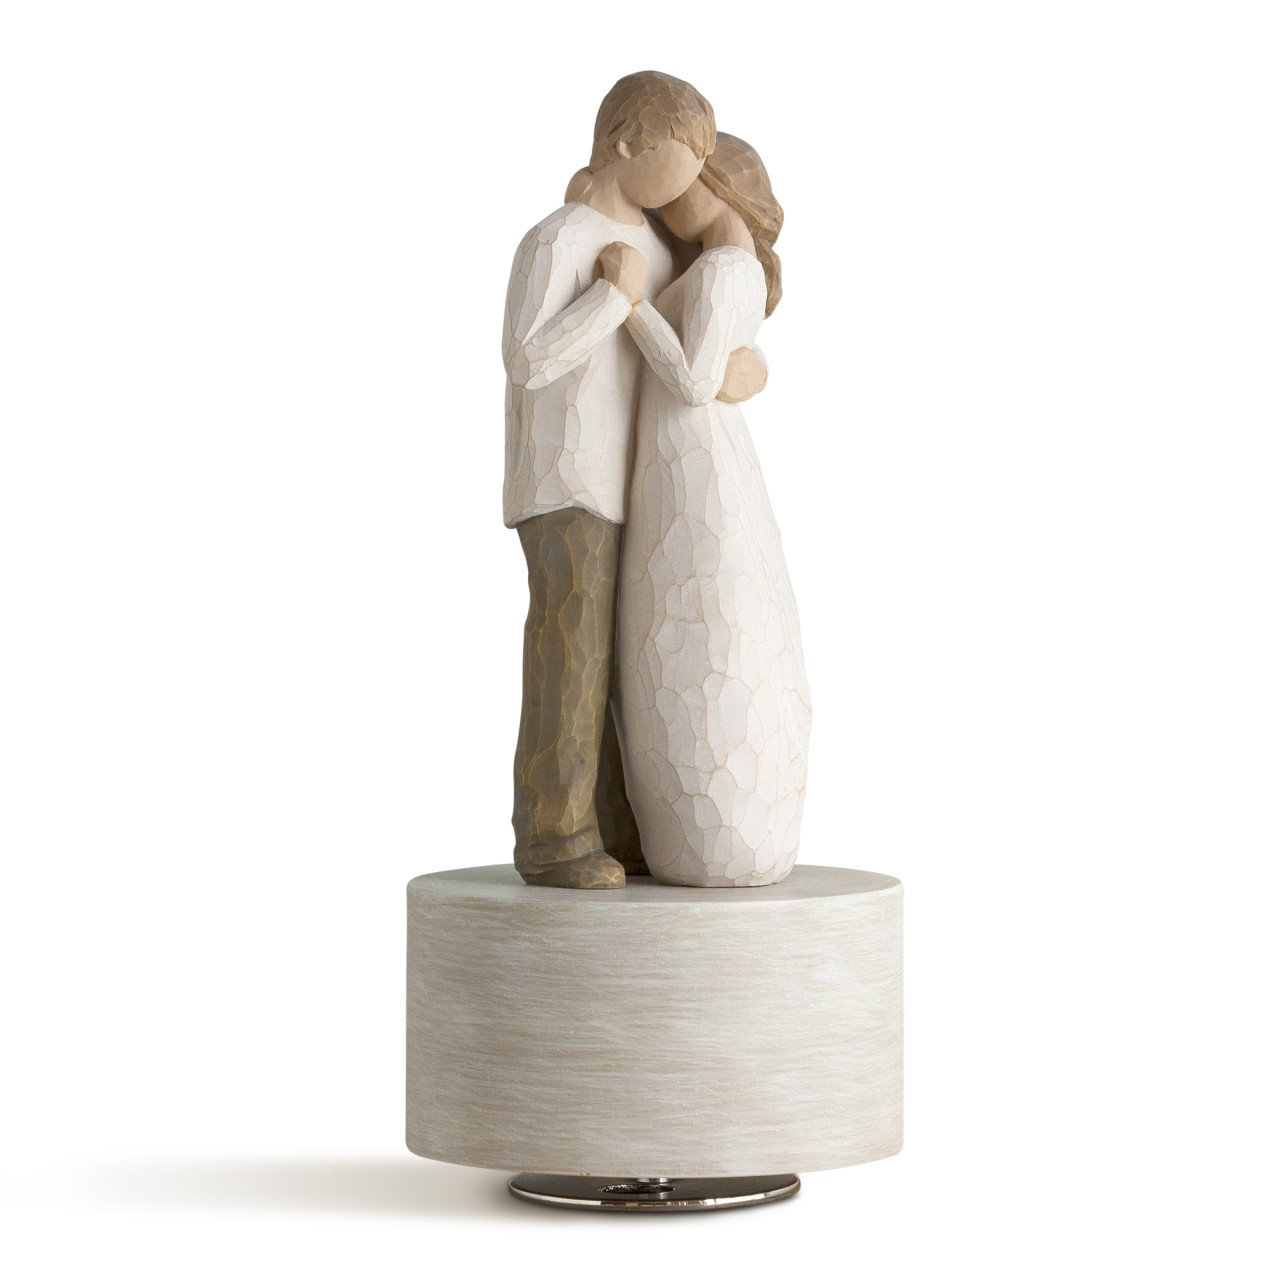 Willow Tree Promise Musical, sculpted hand-painted musical figure by Willow Tree